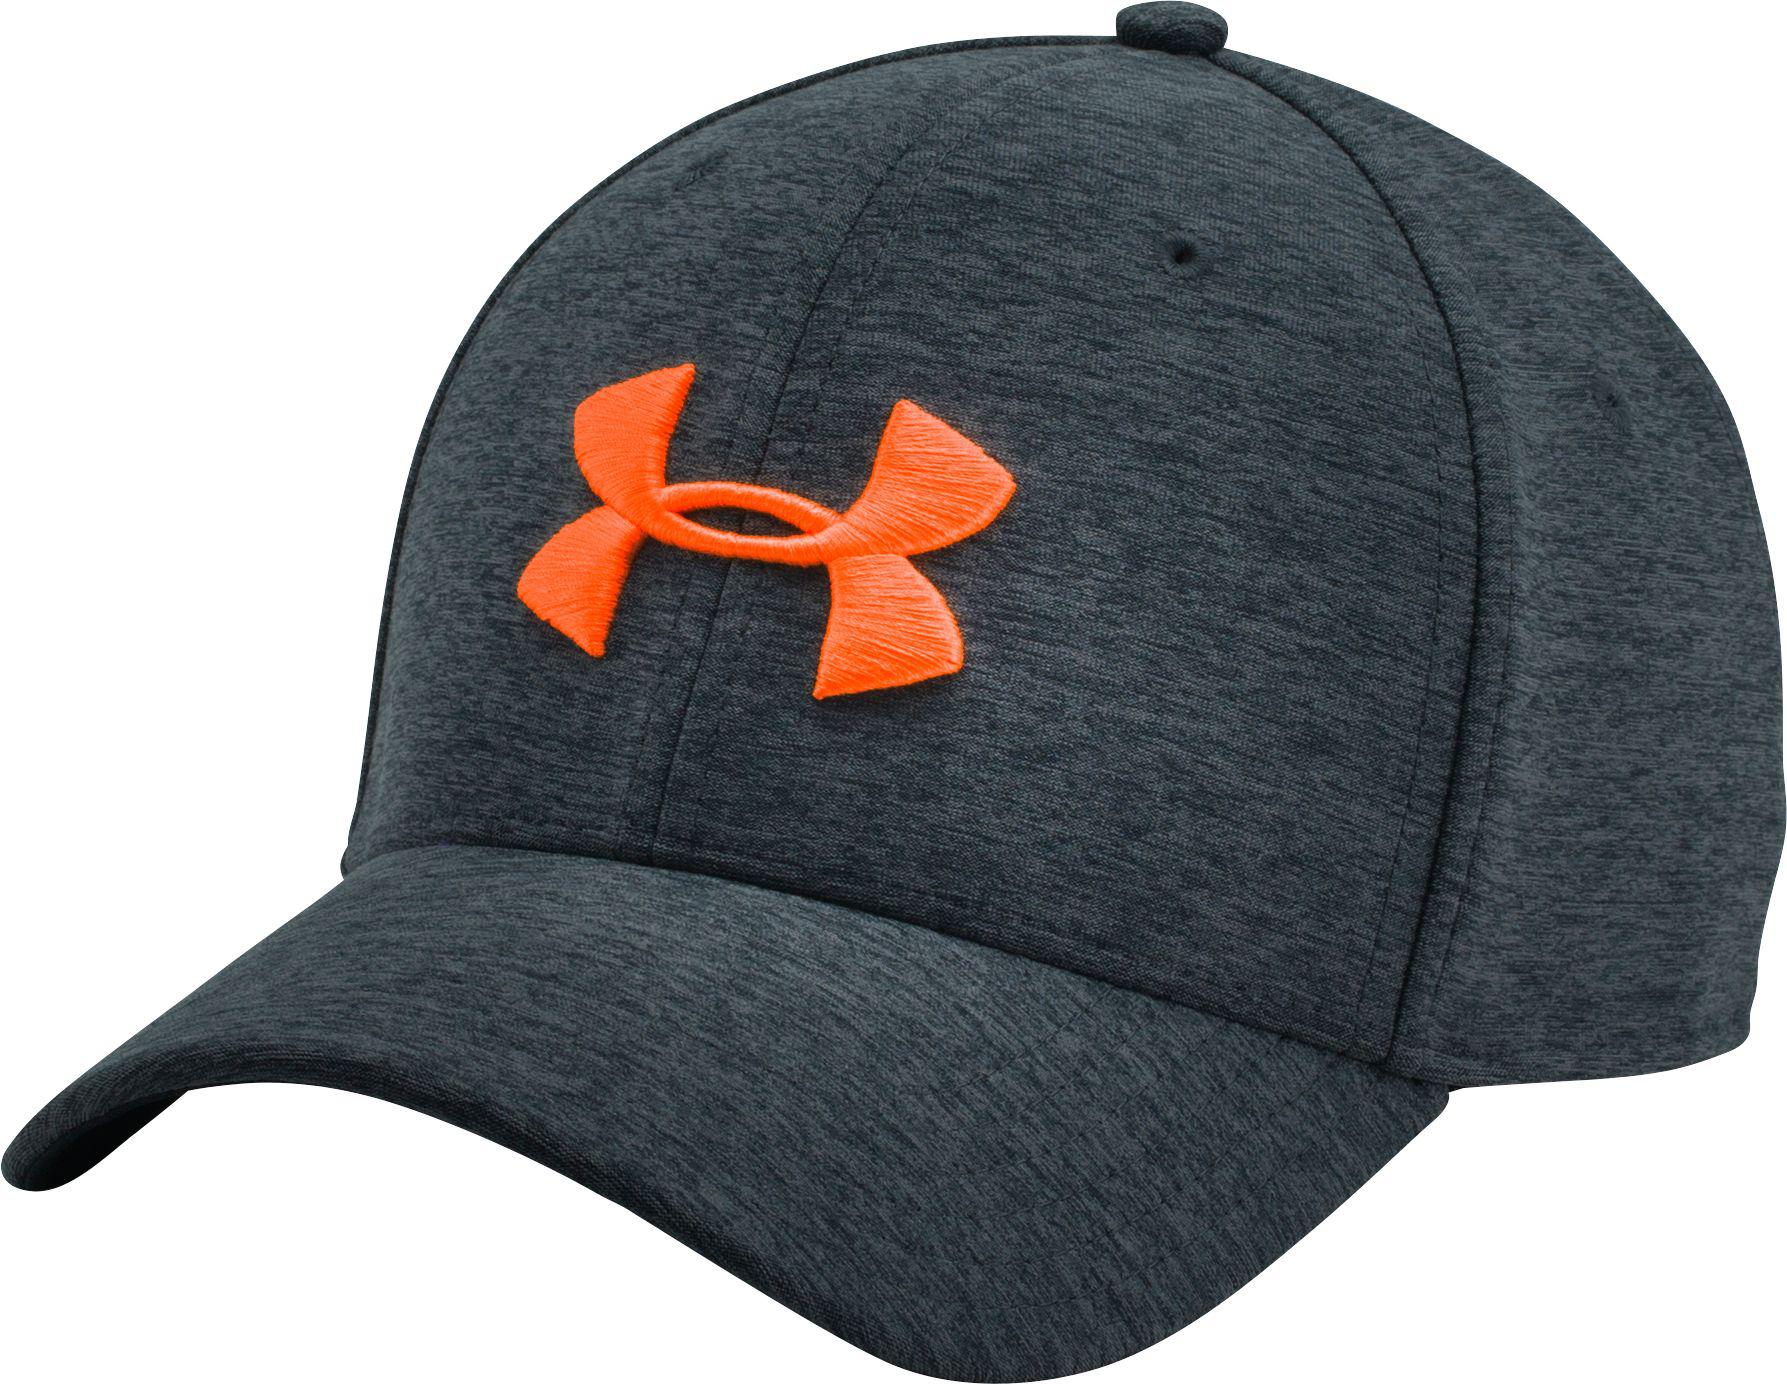 83d8514f25e Lyst - Under Armour Twist Print Tech Closer Hat in Gray for Men